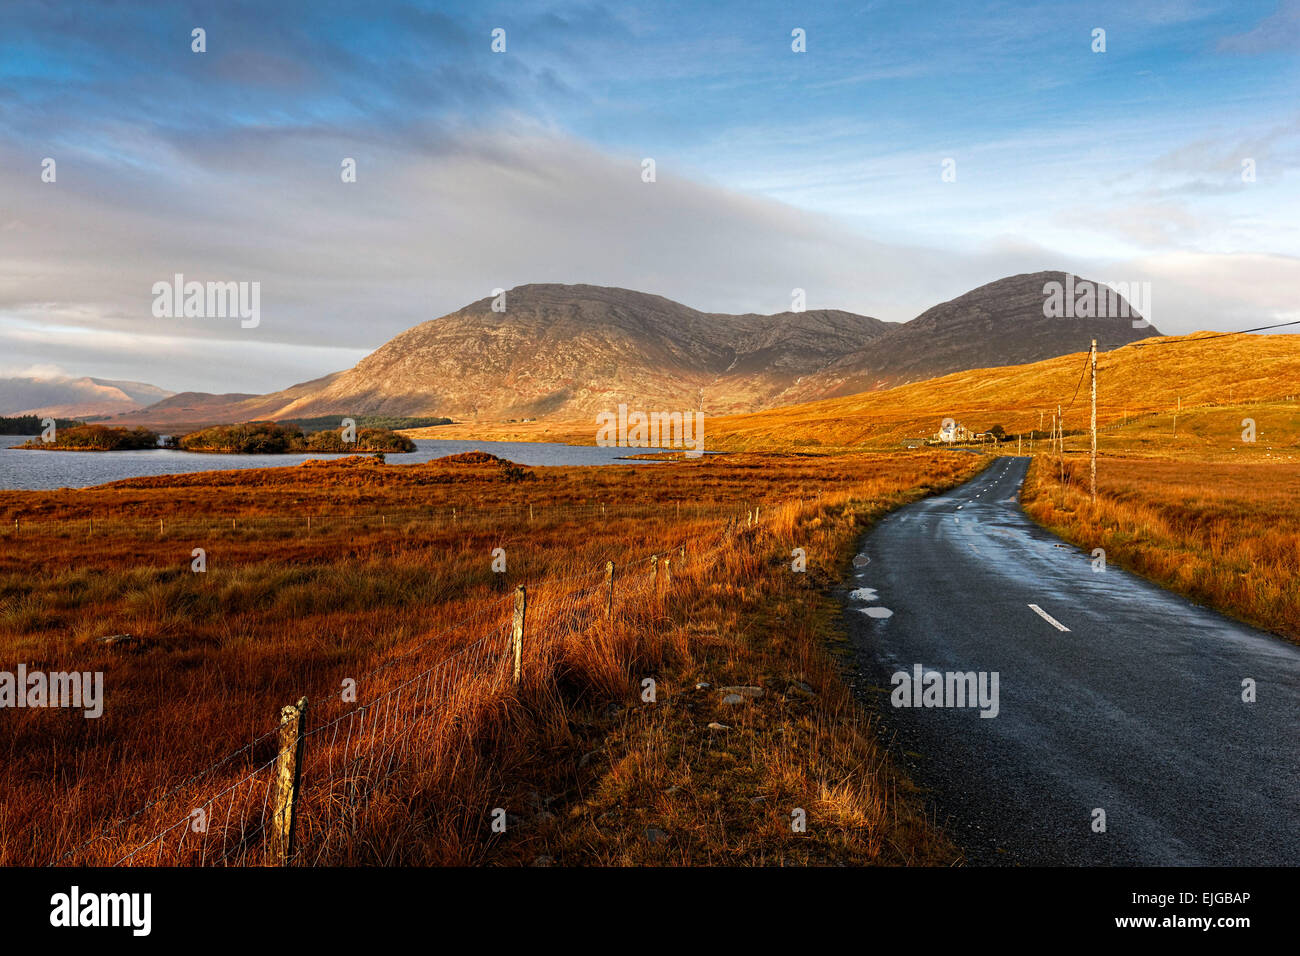 Lake Inagh, Connemara, County Galway, Republic of Ireland, Europe. - Stock Image